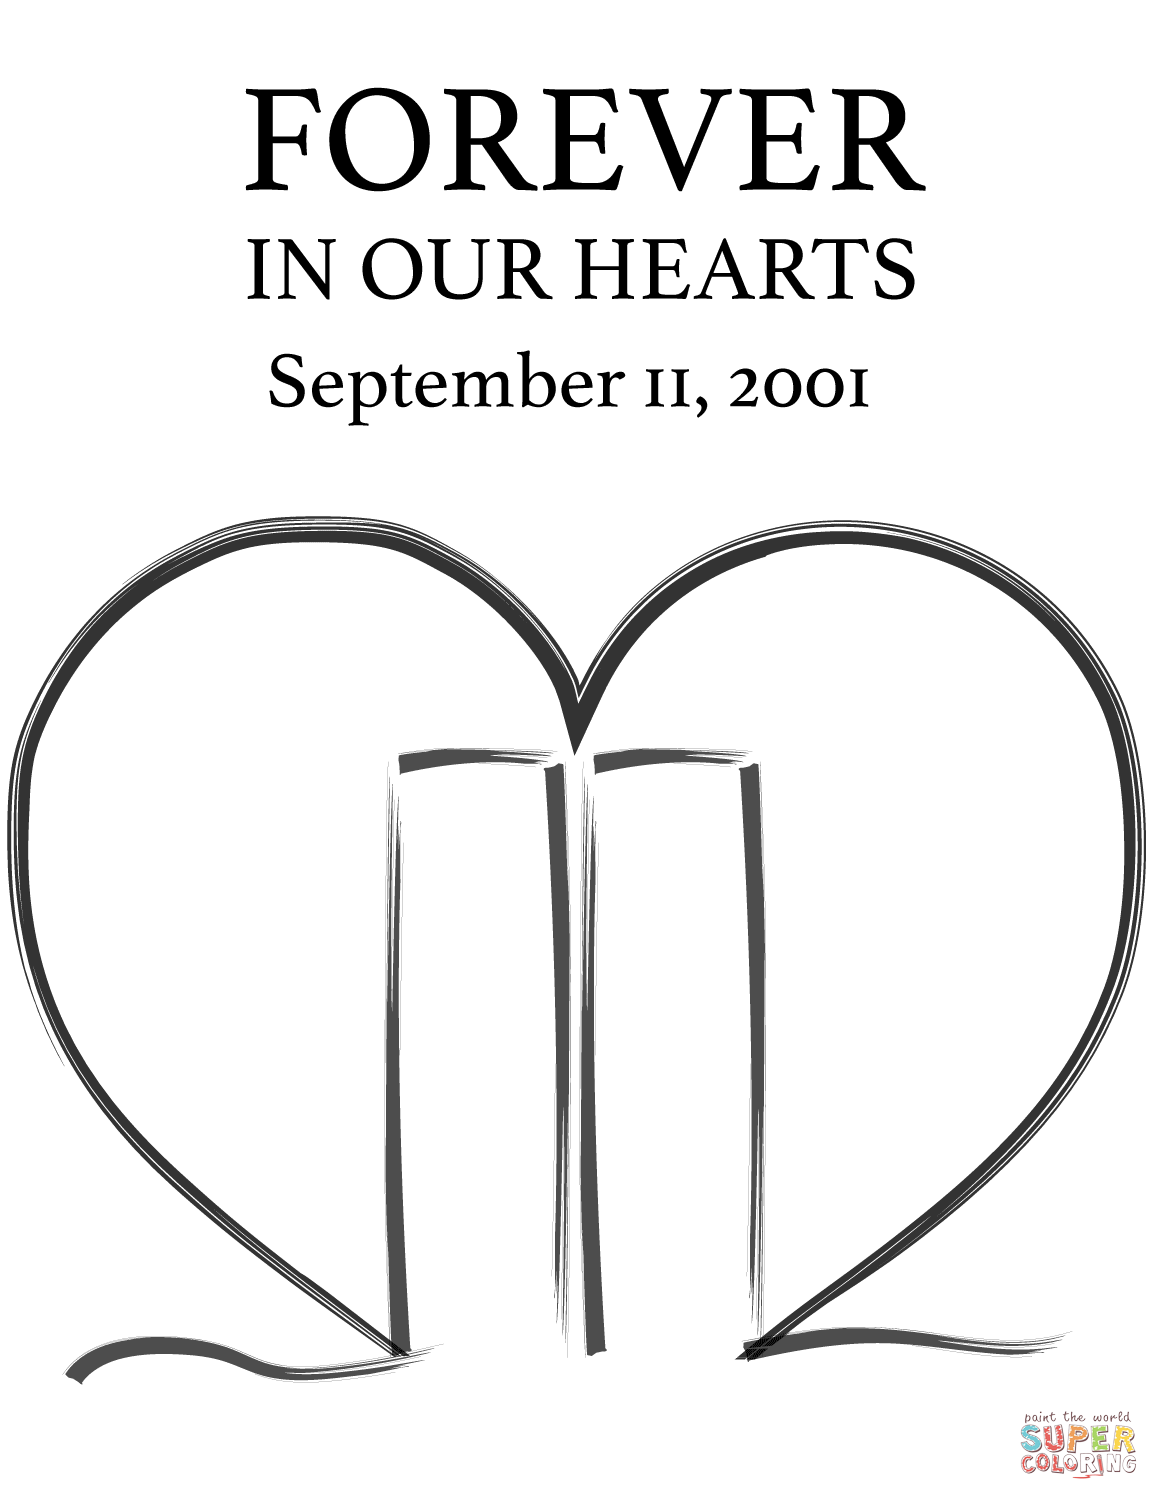 9 11 coloring sheets 9 11 first responders coloring page sketch coloring page 11 sheets coloring 9